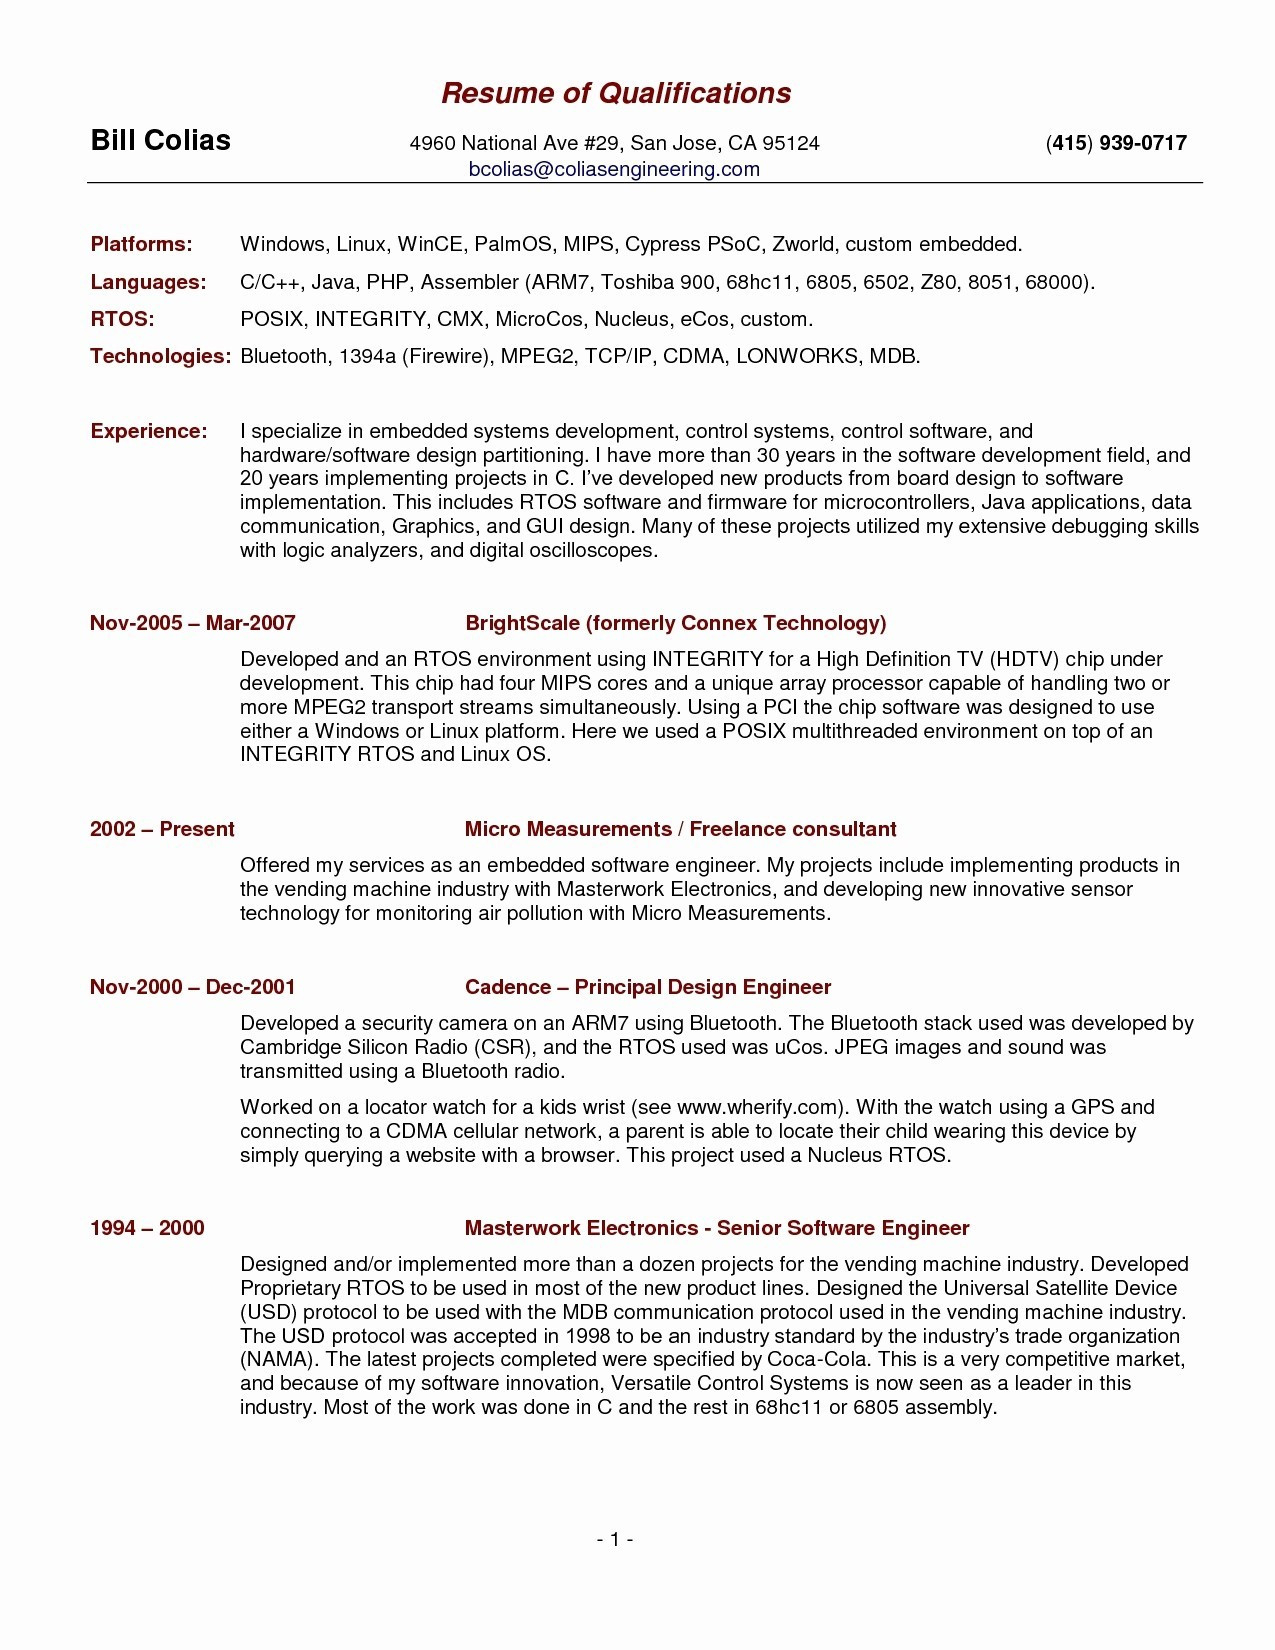 Receptionist Resume Template Free - Sample Resume Guide Page 150 Of 150 Edmyedguide24